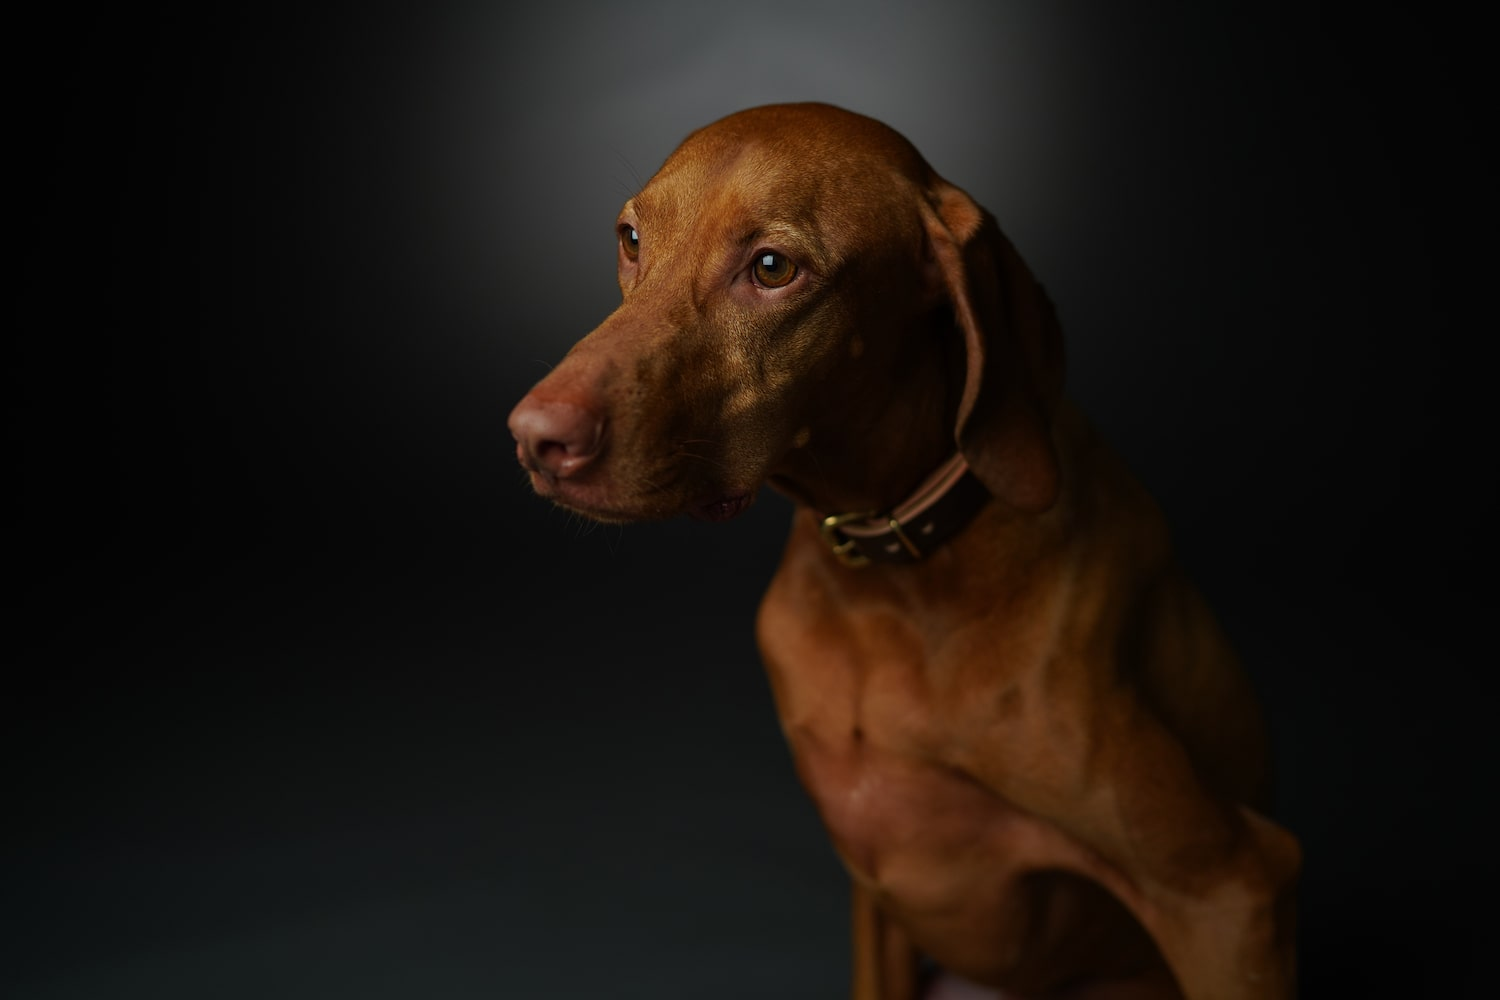 side-portrait-brown-dog-alpha-7RIV